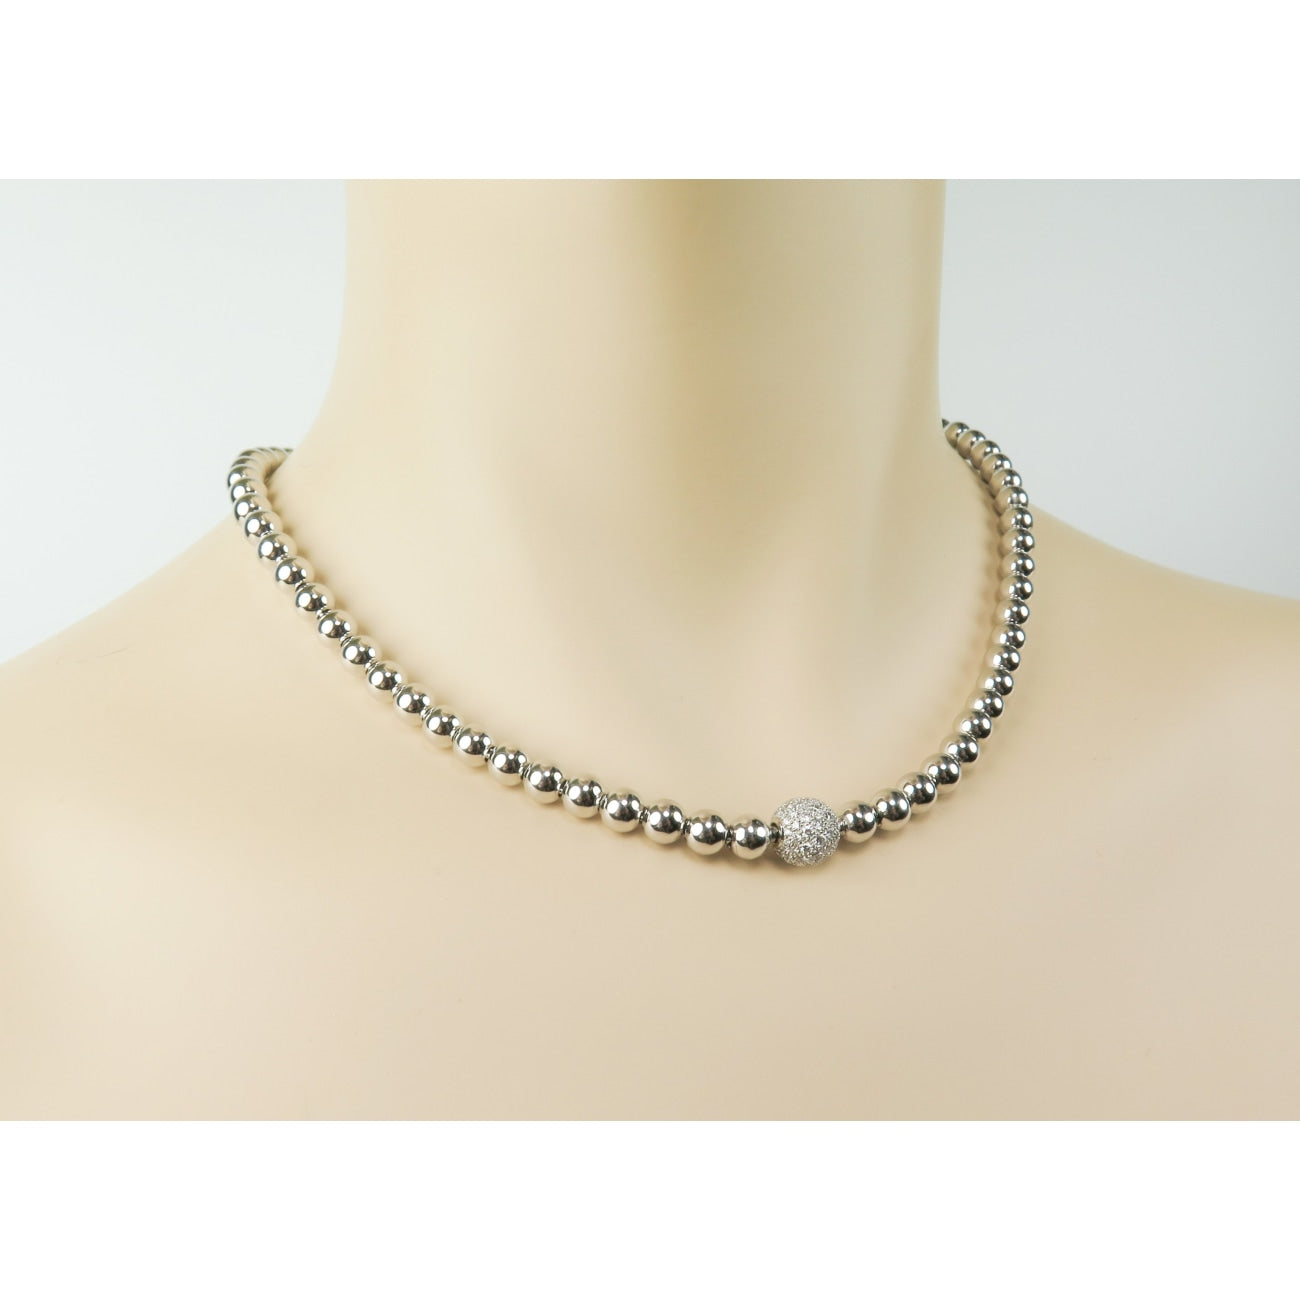 Louis Fiessler Jewelry - 18k White Gold Necklace by Louis Fiessler | Manfredi Jewels